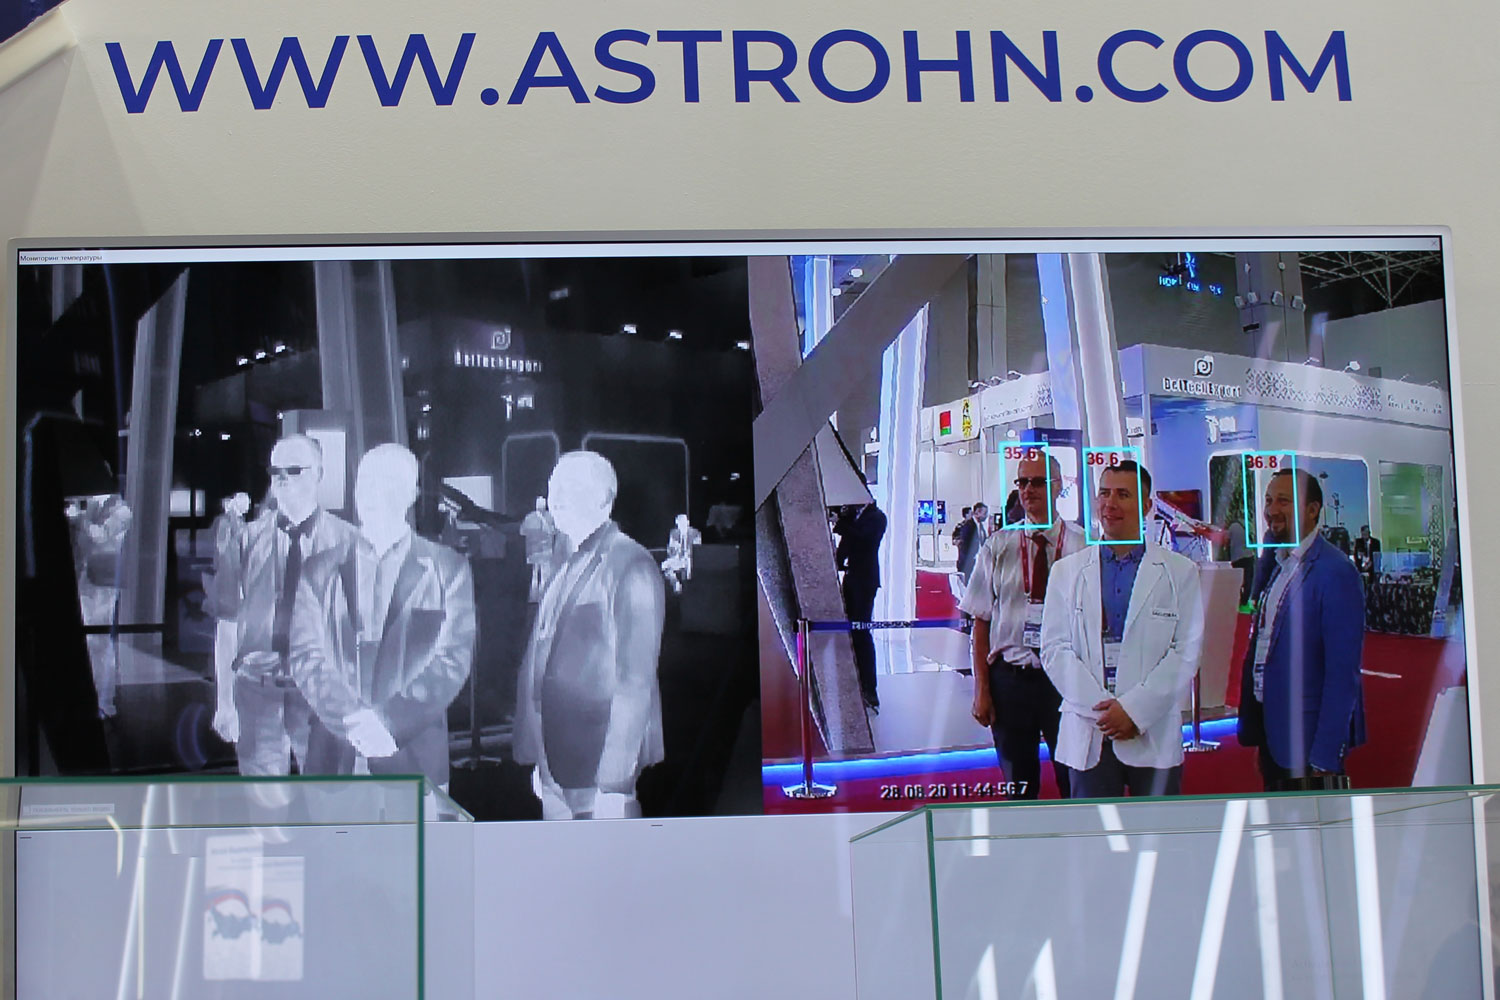 Demonstration of the operation of ASTROHN-PTR2020 television and thermal imaging recorder